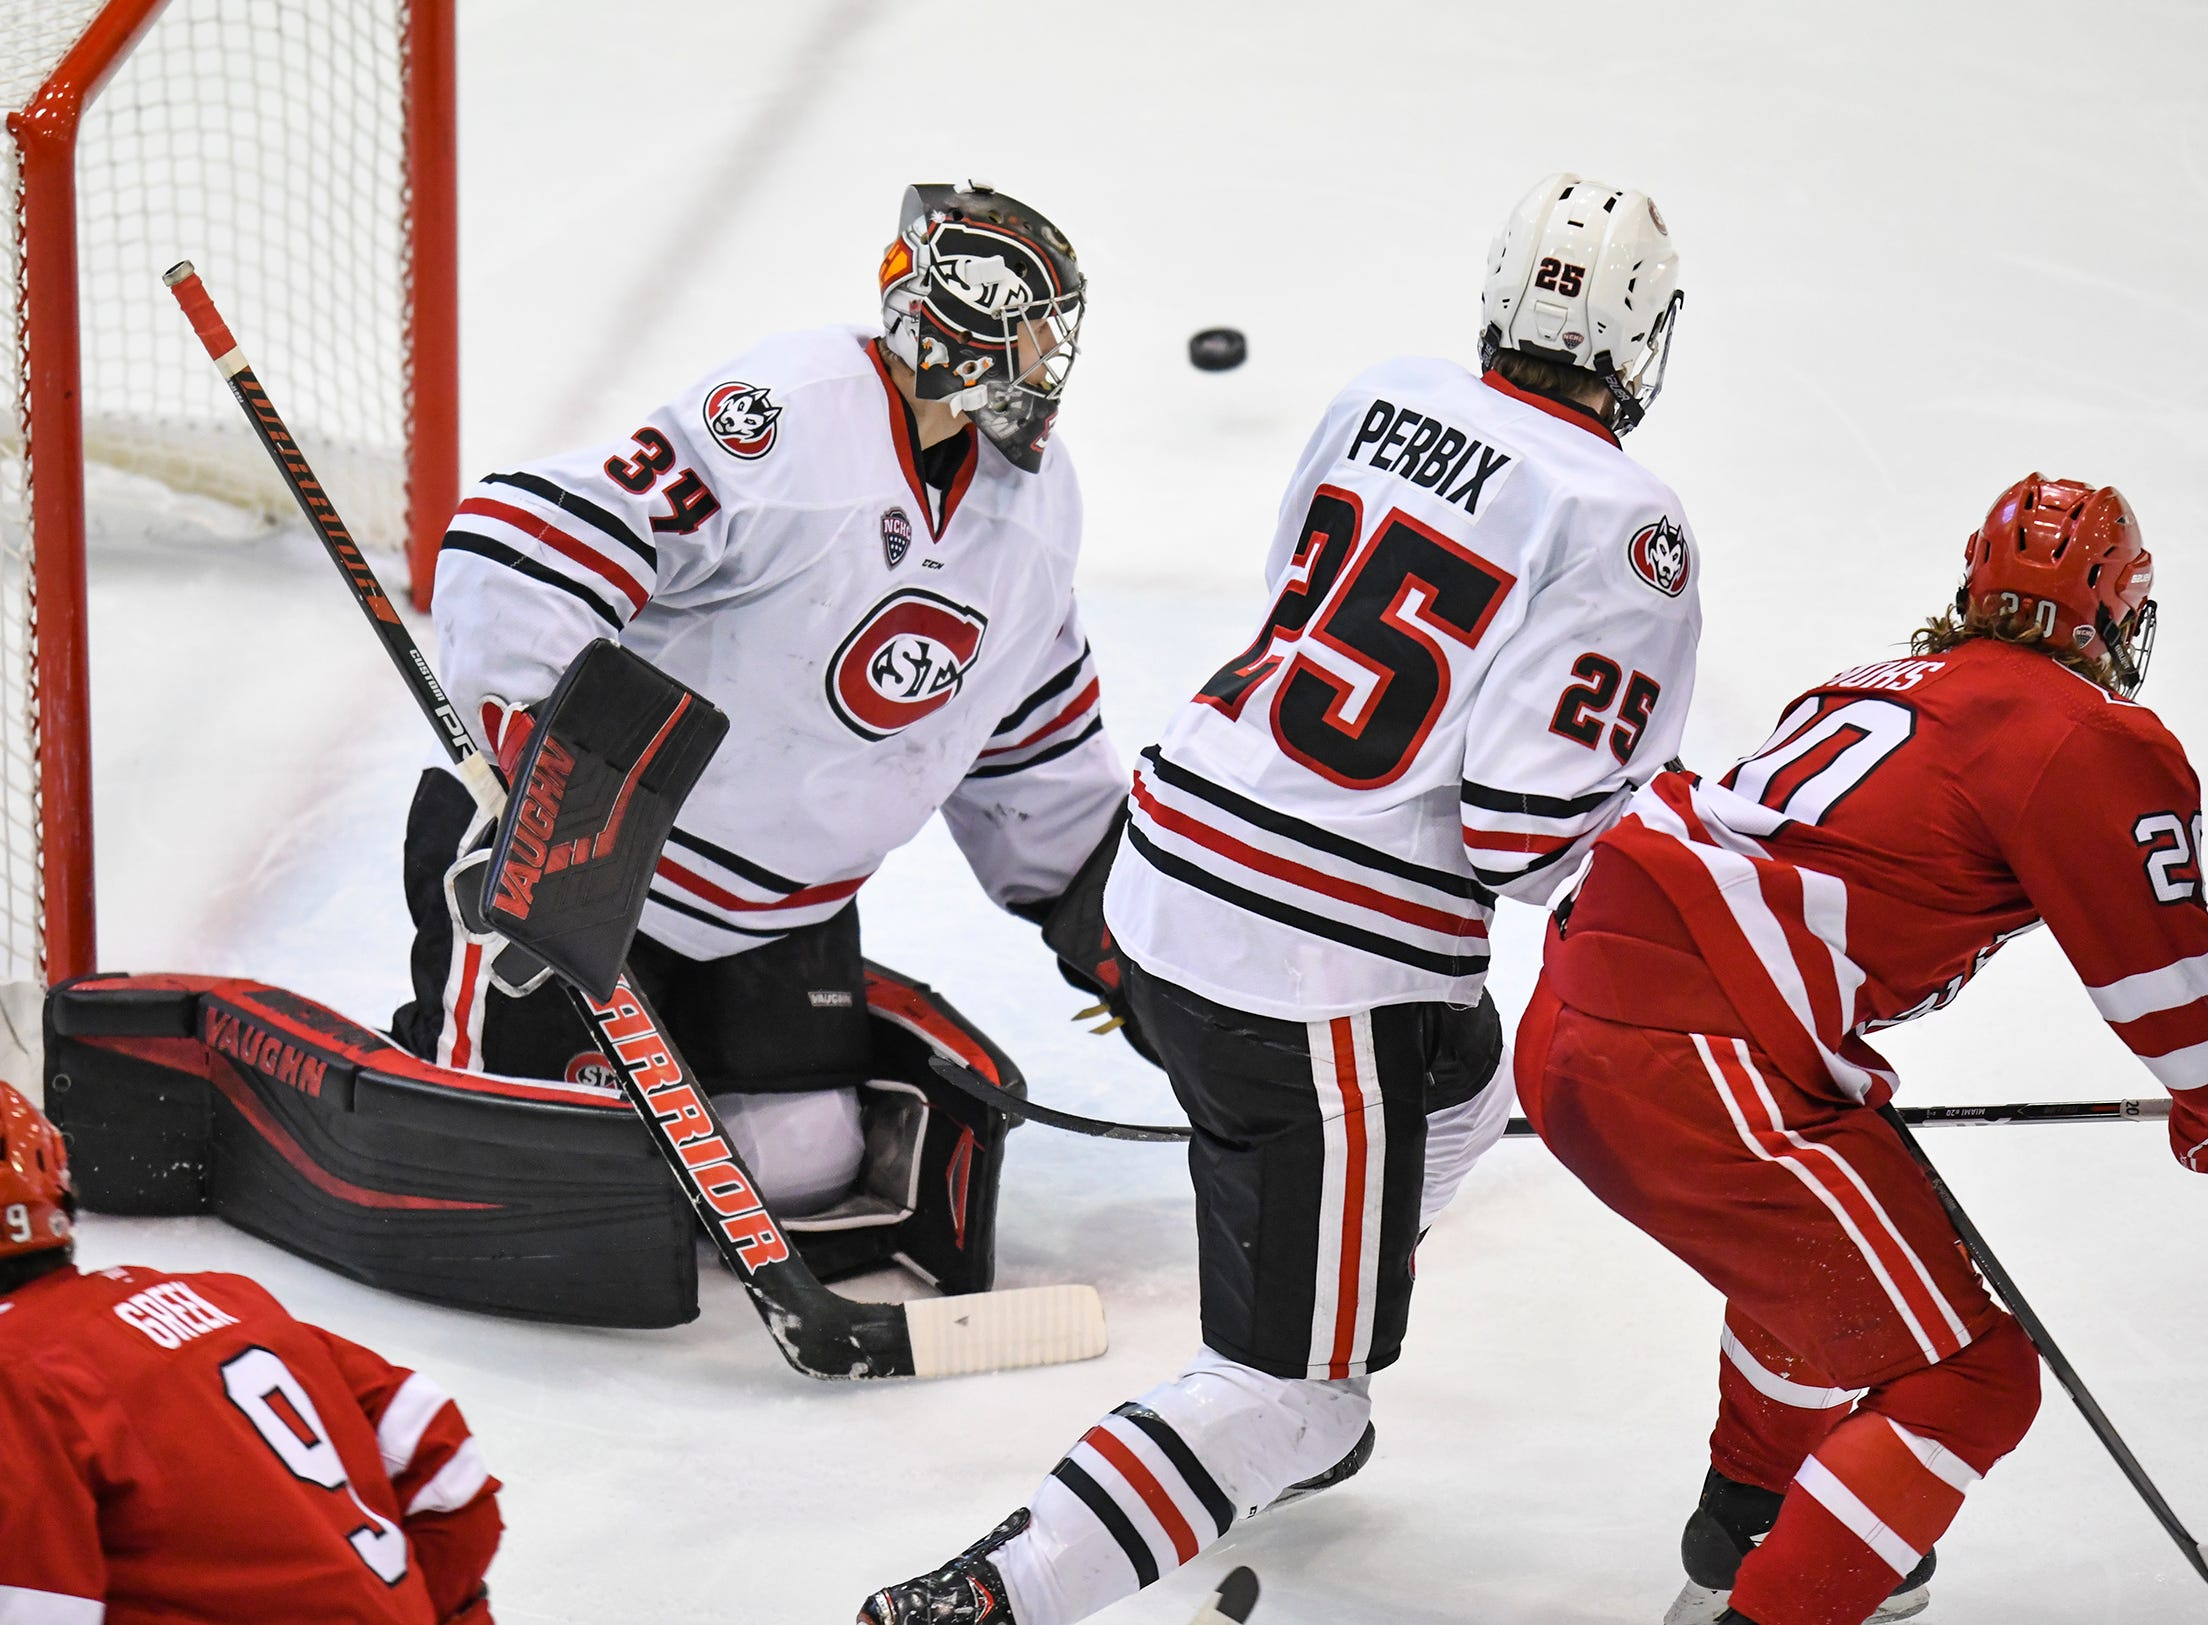 The puck flies past St. Cloud State goaltender David Hrenak during the second period of the Saturday, March 16 game at the Herb Brooks National Hockey Center in St. Cloud.